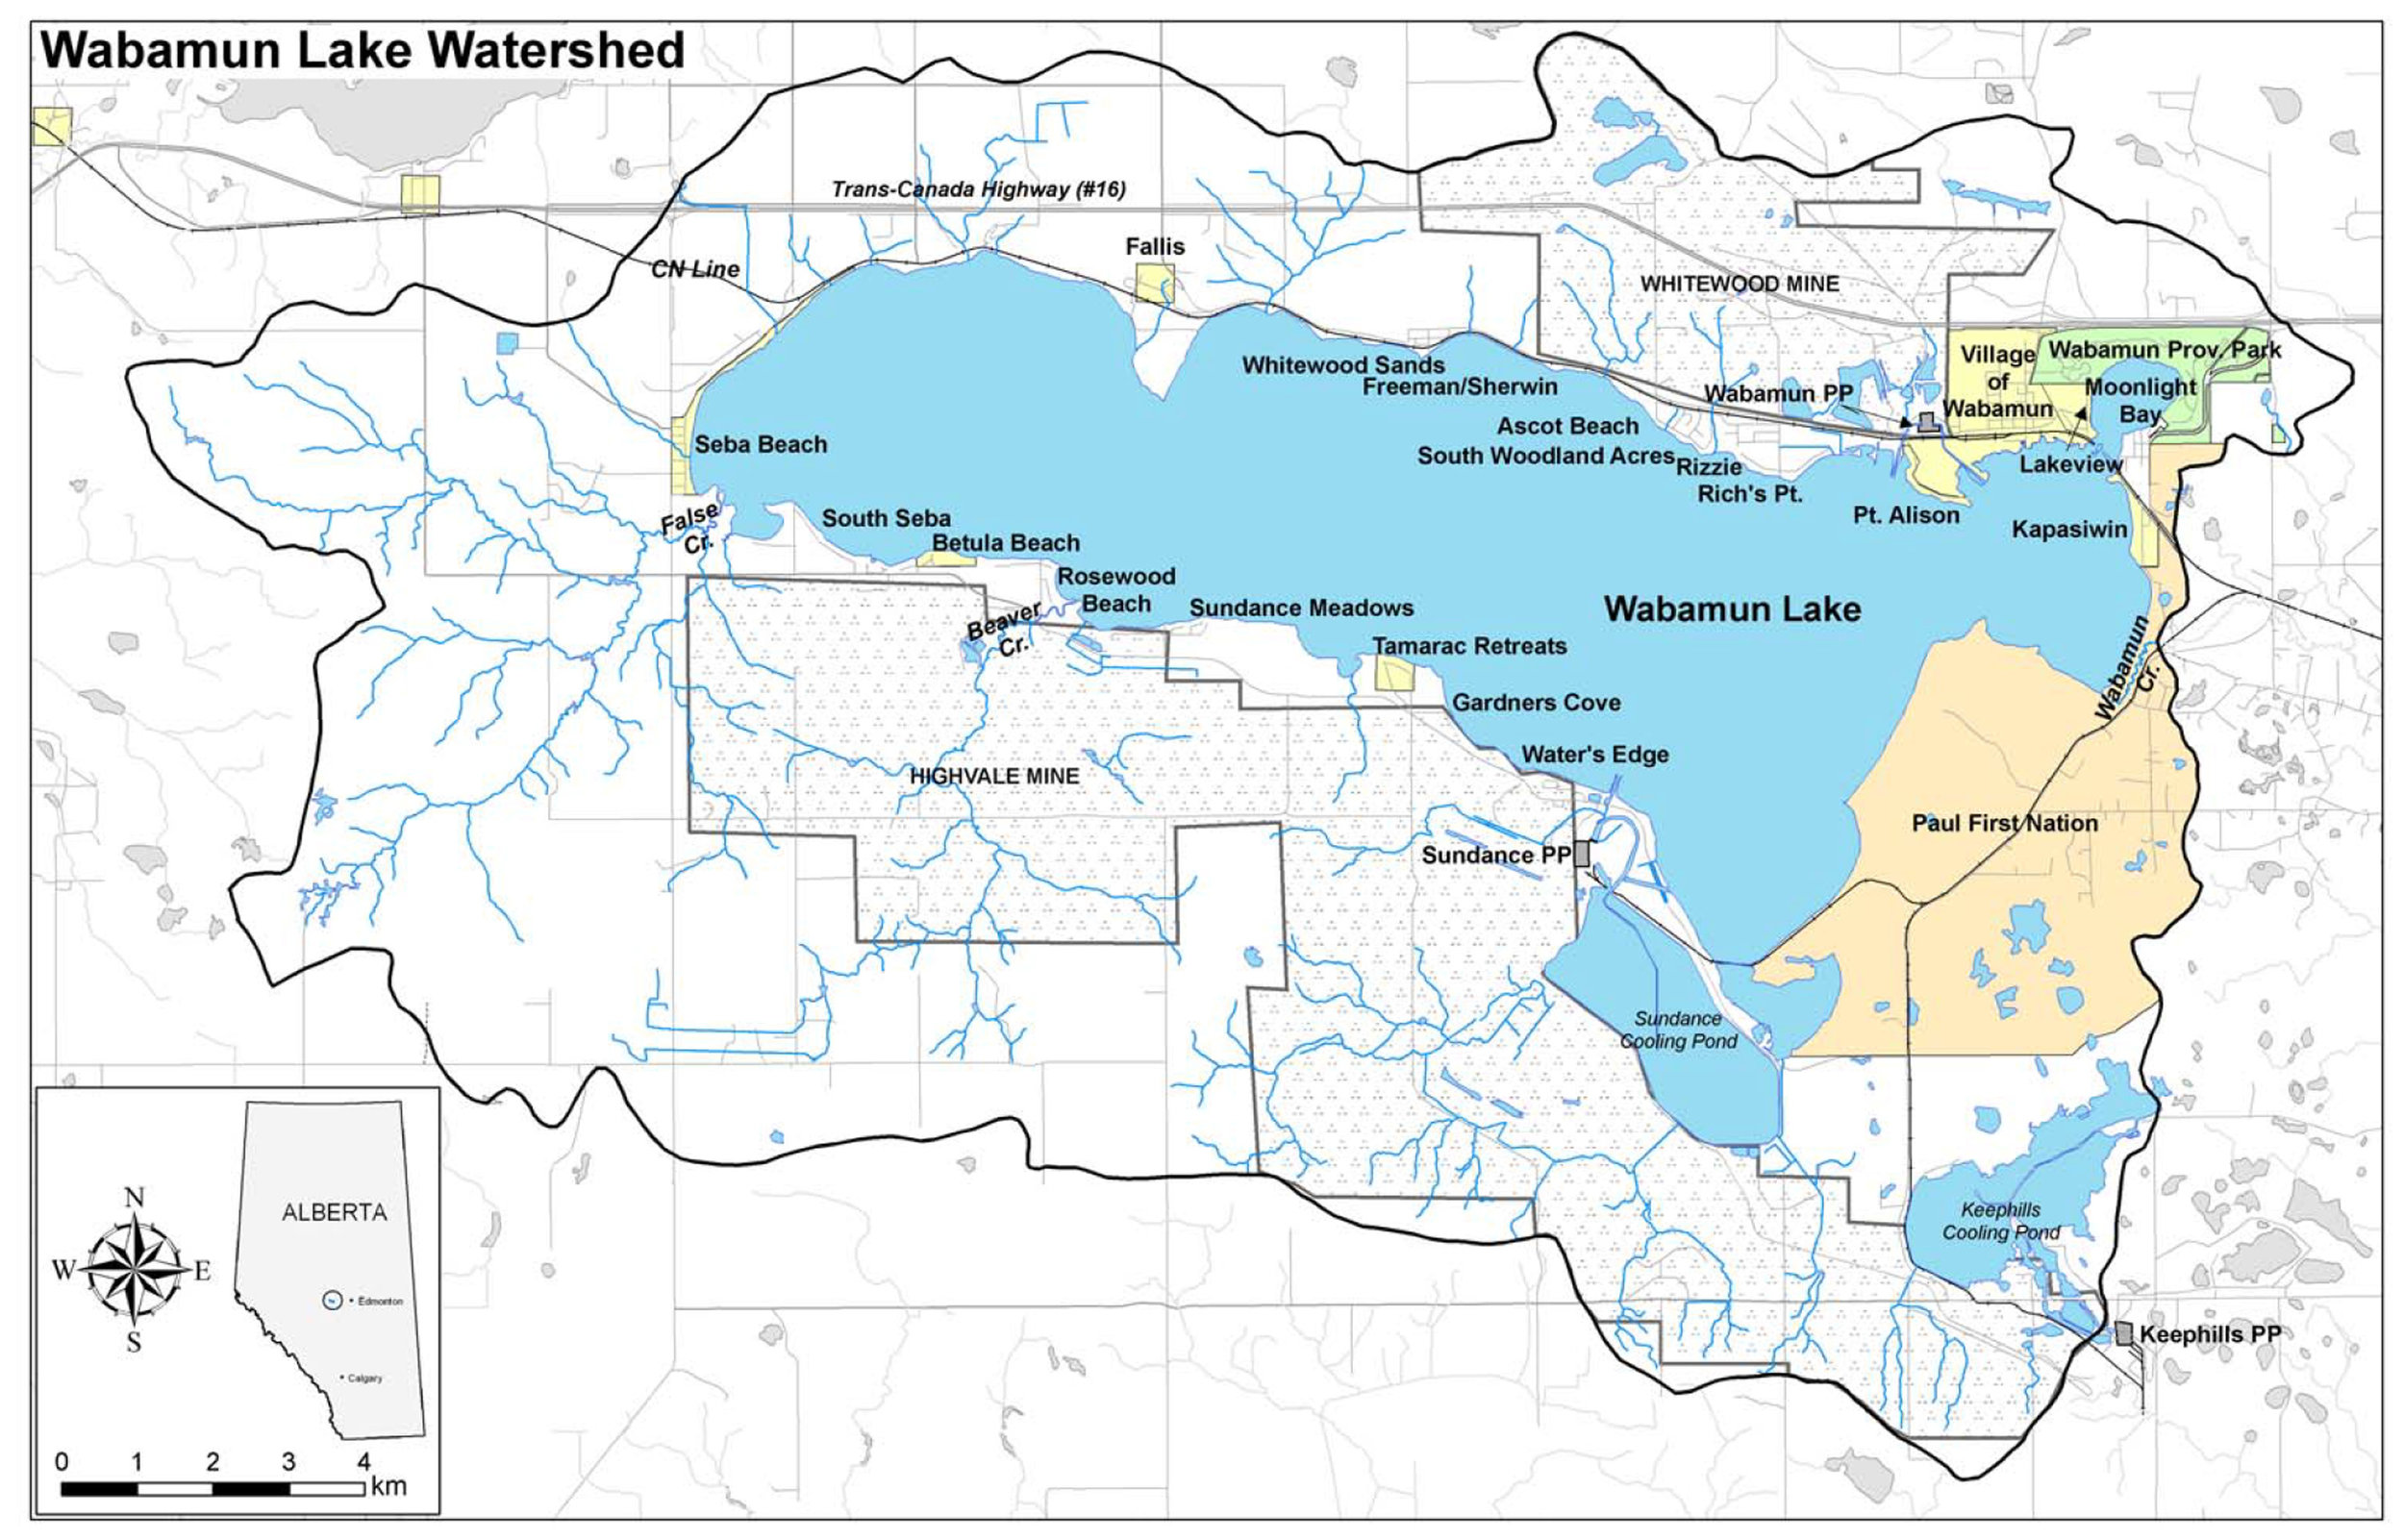 Wabamun Lake's watershed (outlined in black) is small compared to other lakes of similar size. It is about three times the size of the lake.